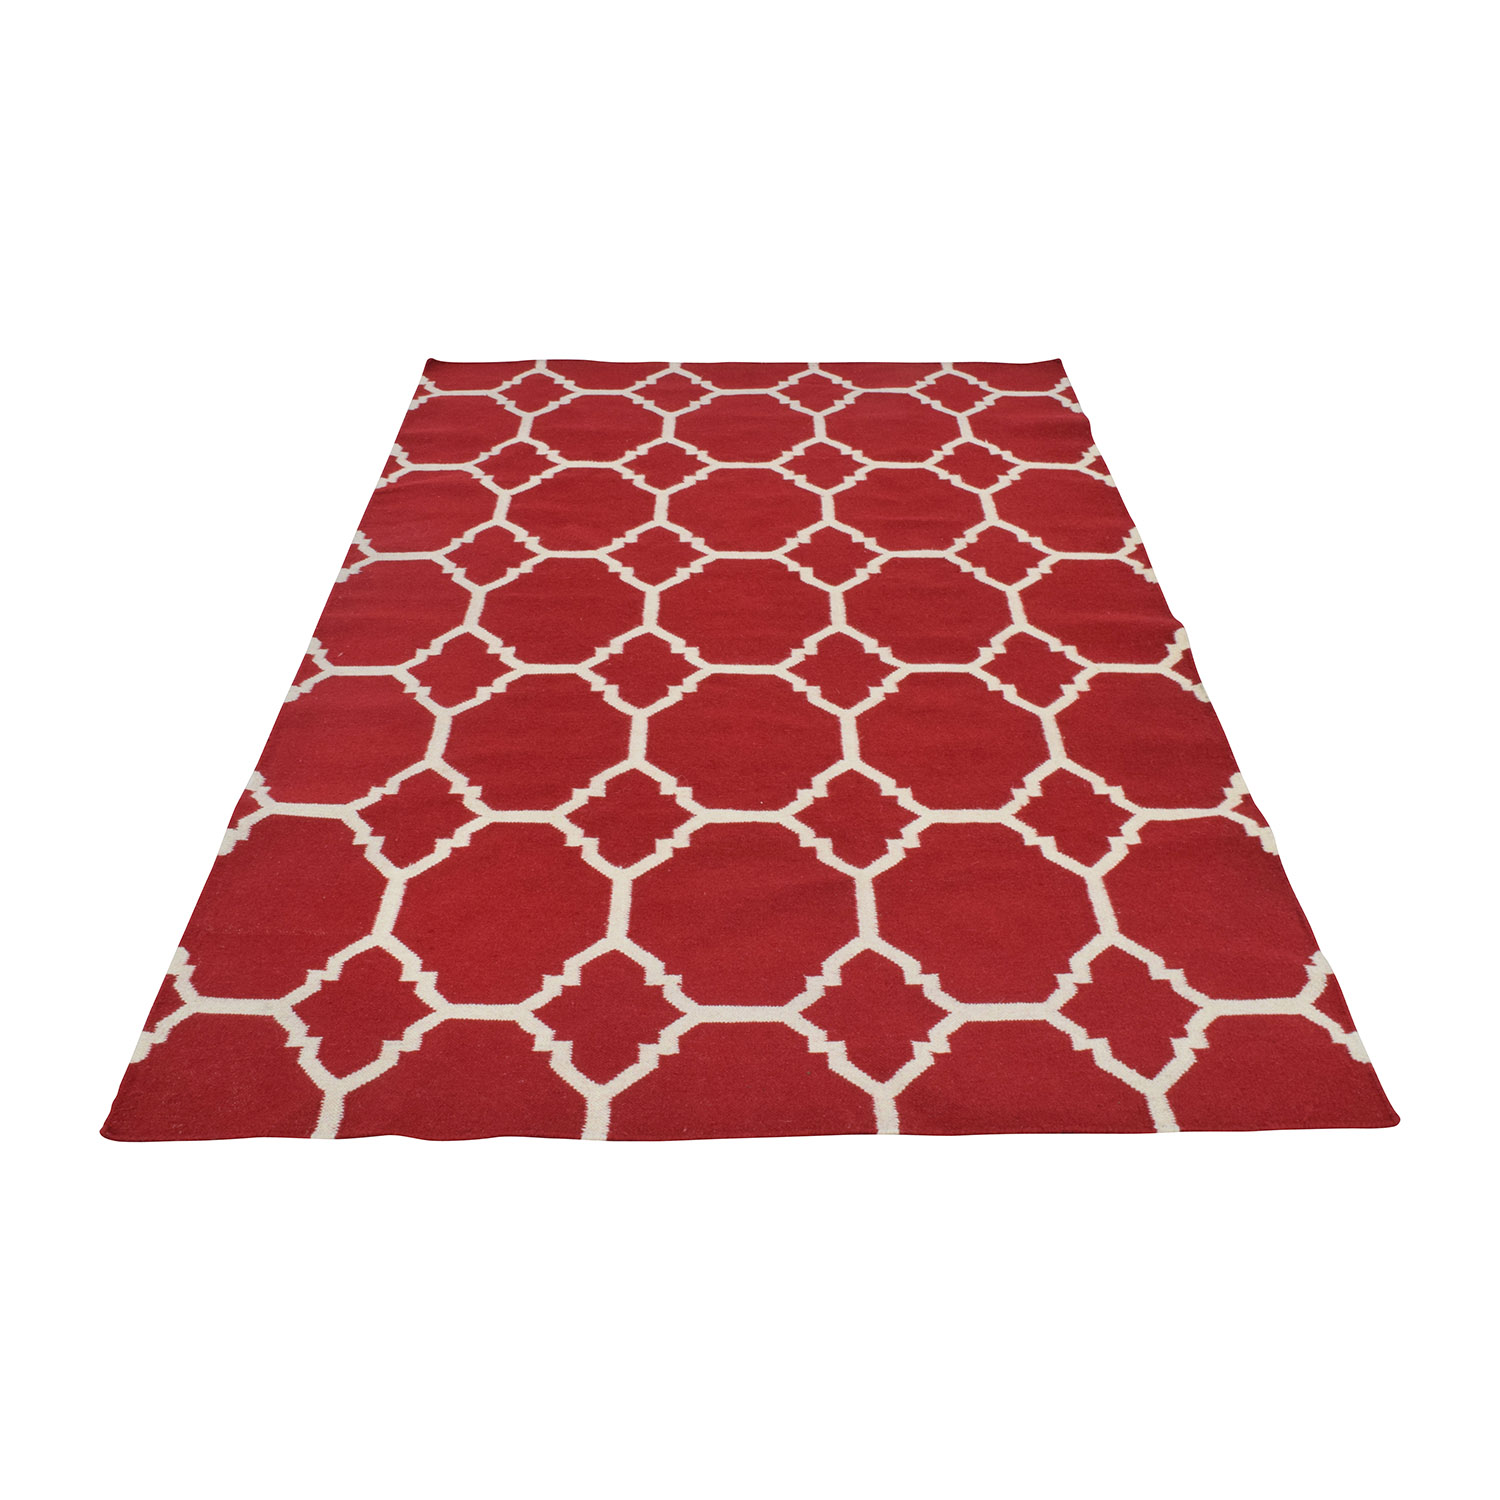 Red and White Graphic Rug coupon